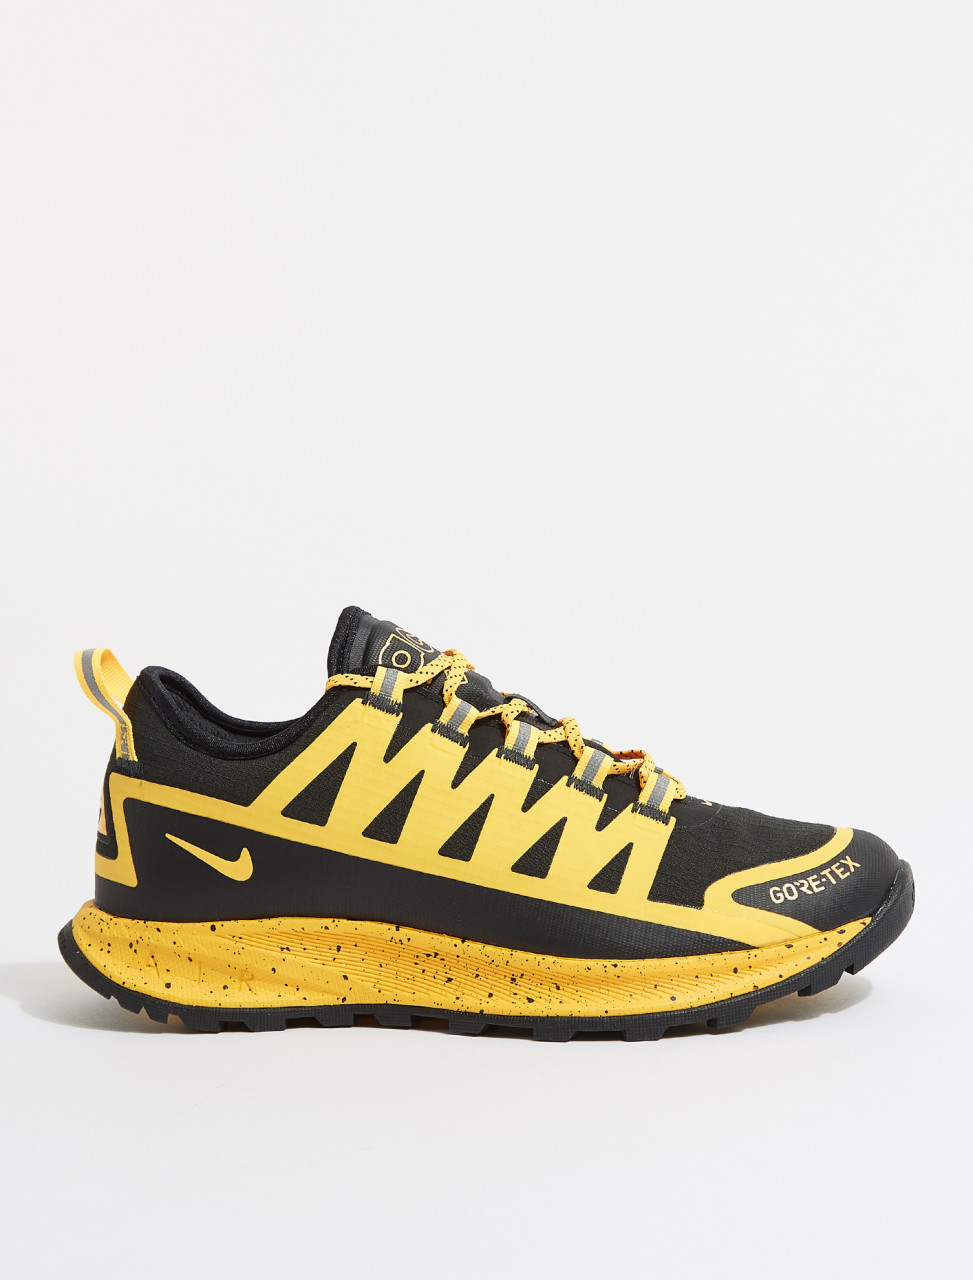 CW6020-001 NIKE AIR NASU GORETEX BLACK LASER ORANGE